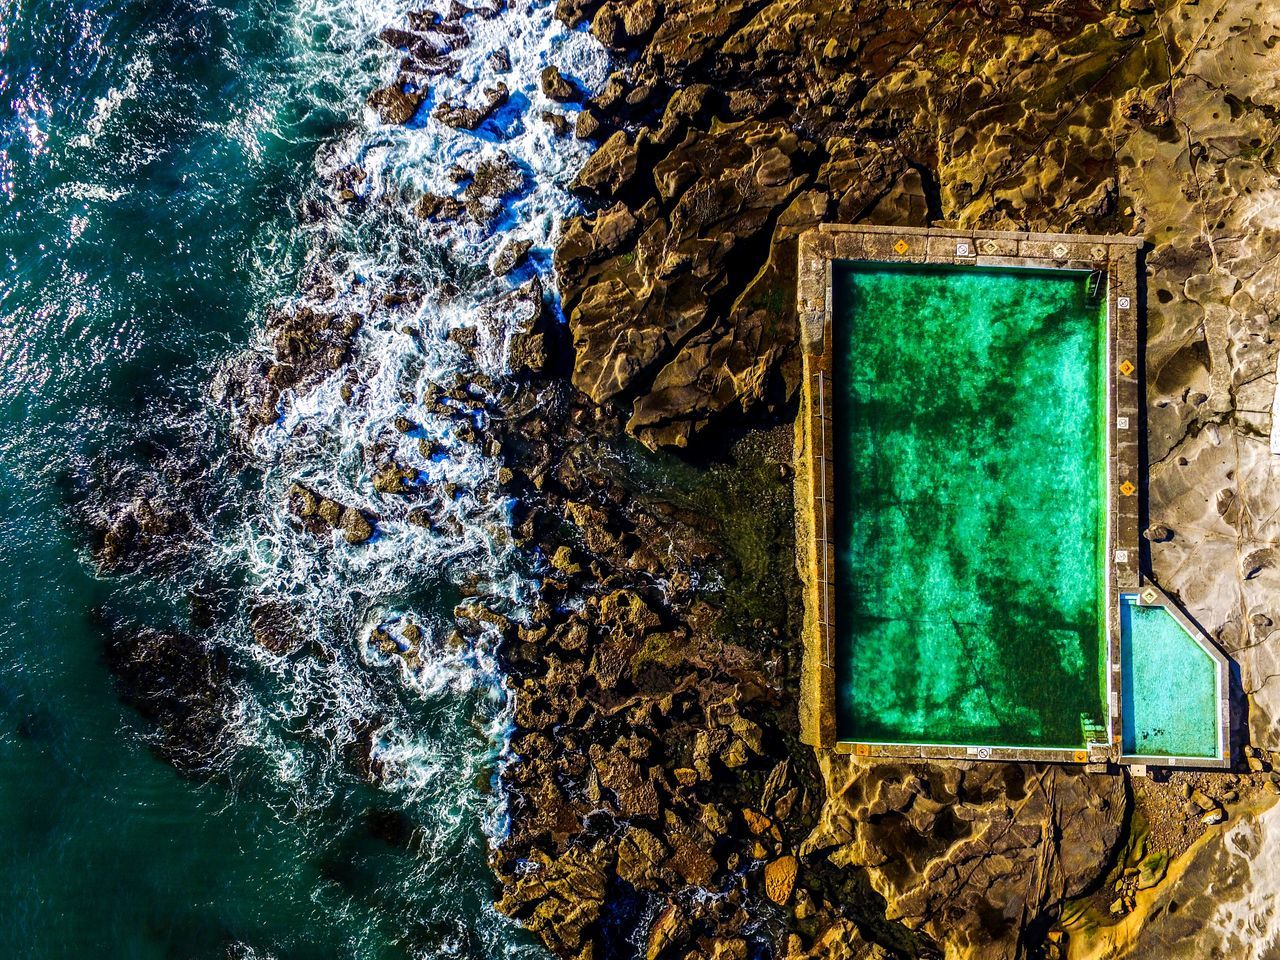 Who would not like to swim here? Beautiful Nature Beauty In Nature Bestoftheday Birds Eye View Cliffs Drone  Drone Moments Drone Photography Dronephotography Drones Droneshot Eye4photography  EyeEm Best Shots EyeEmBestPics From Above  Nature Outdoors Relax Rockpool Rockpools Rough Stunning Swimming Swimming Pool Swimming With The Fish